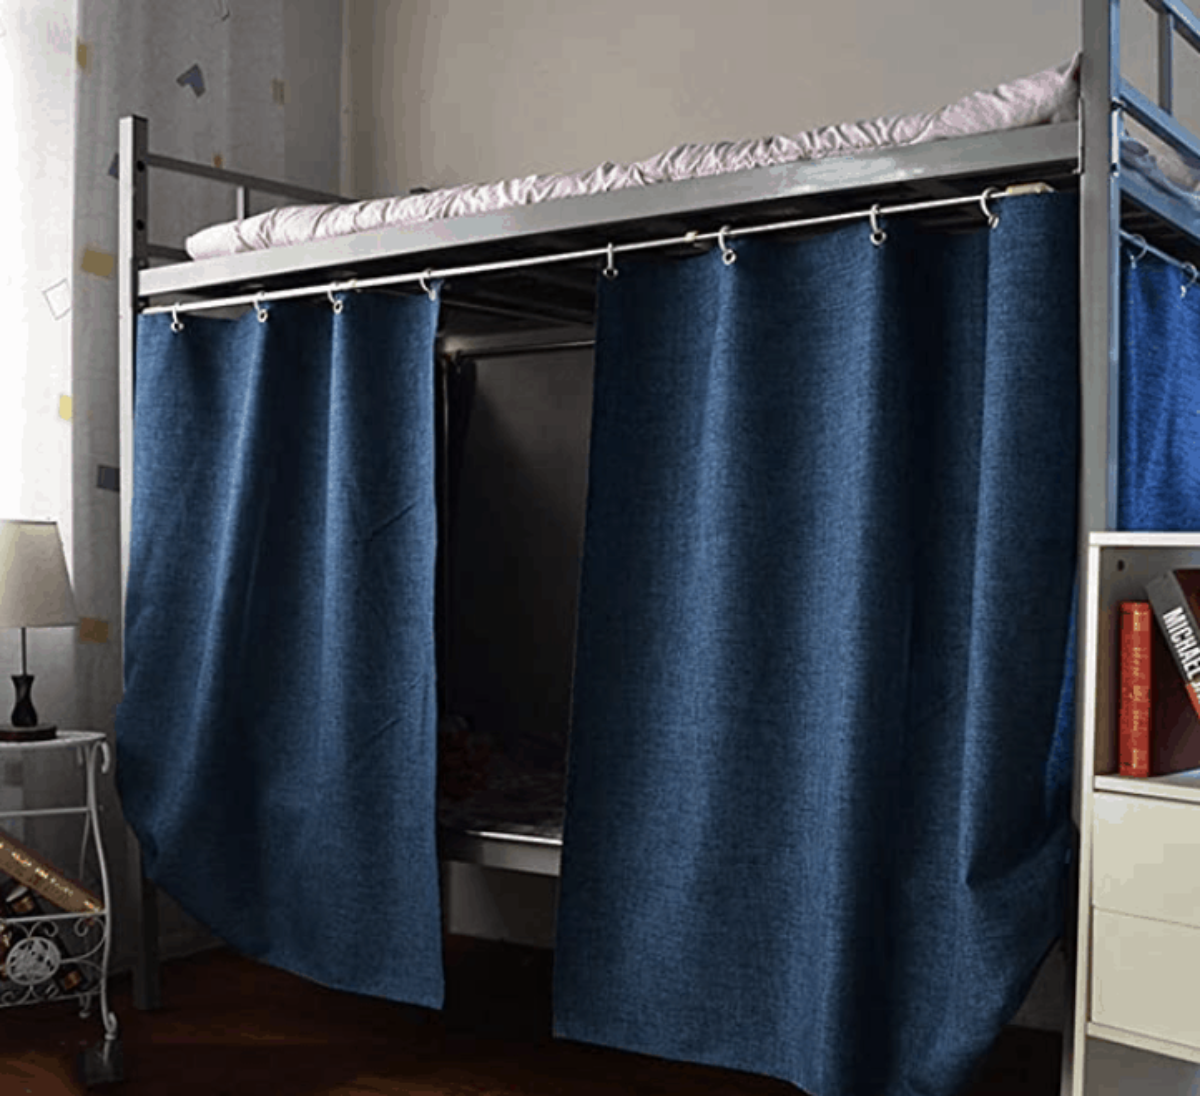 Ultimate List Of Bunk Bed Accessories And Why You Need Them